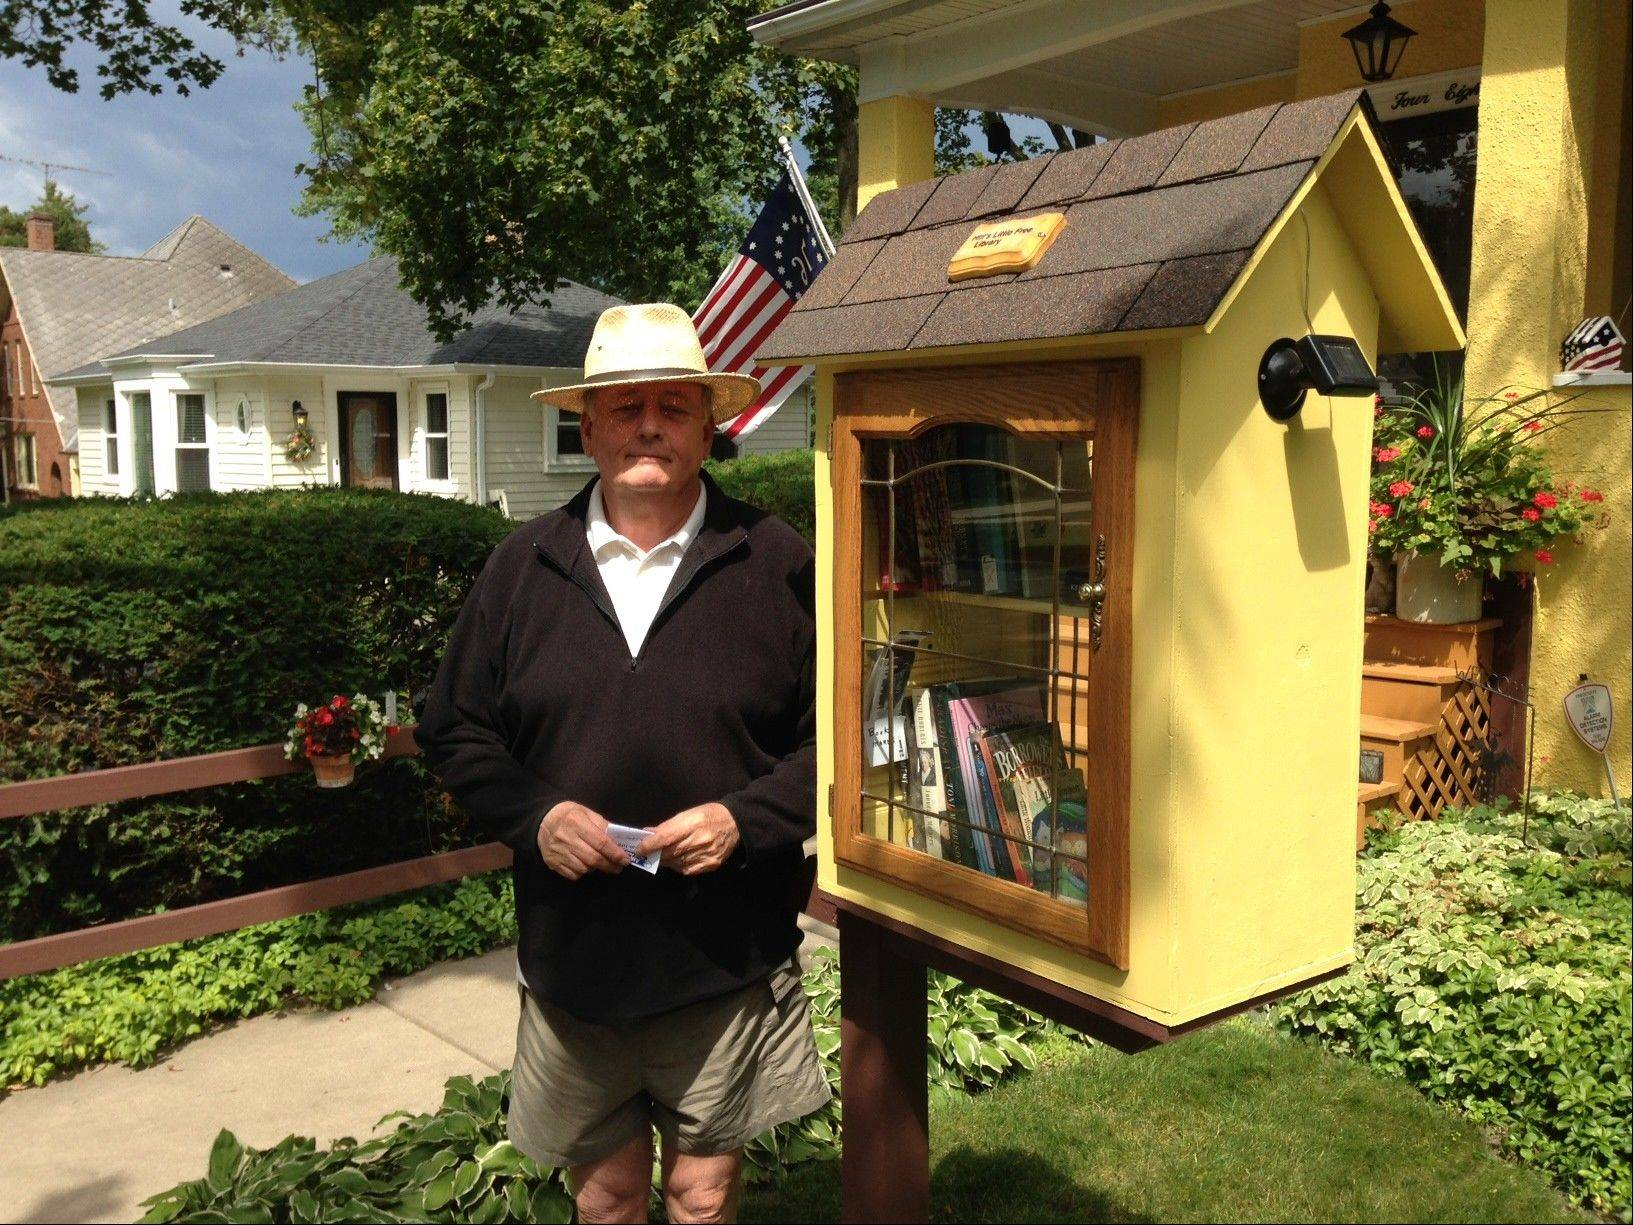 Mike Hill loves the Little Free Library his son built for him. People can take or leave books at any time. Solar-powered lighting illuminates the shelves at night.